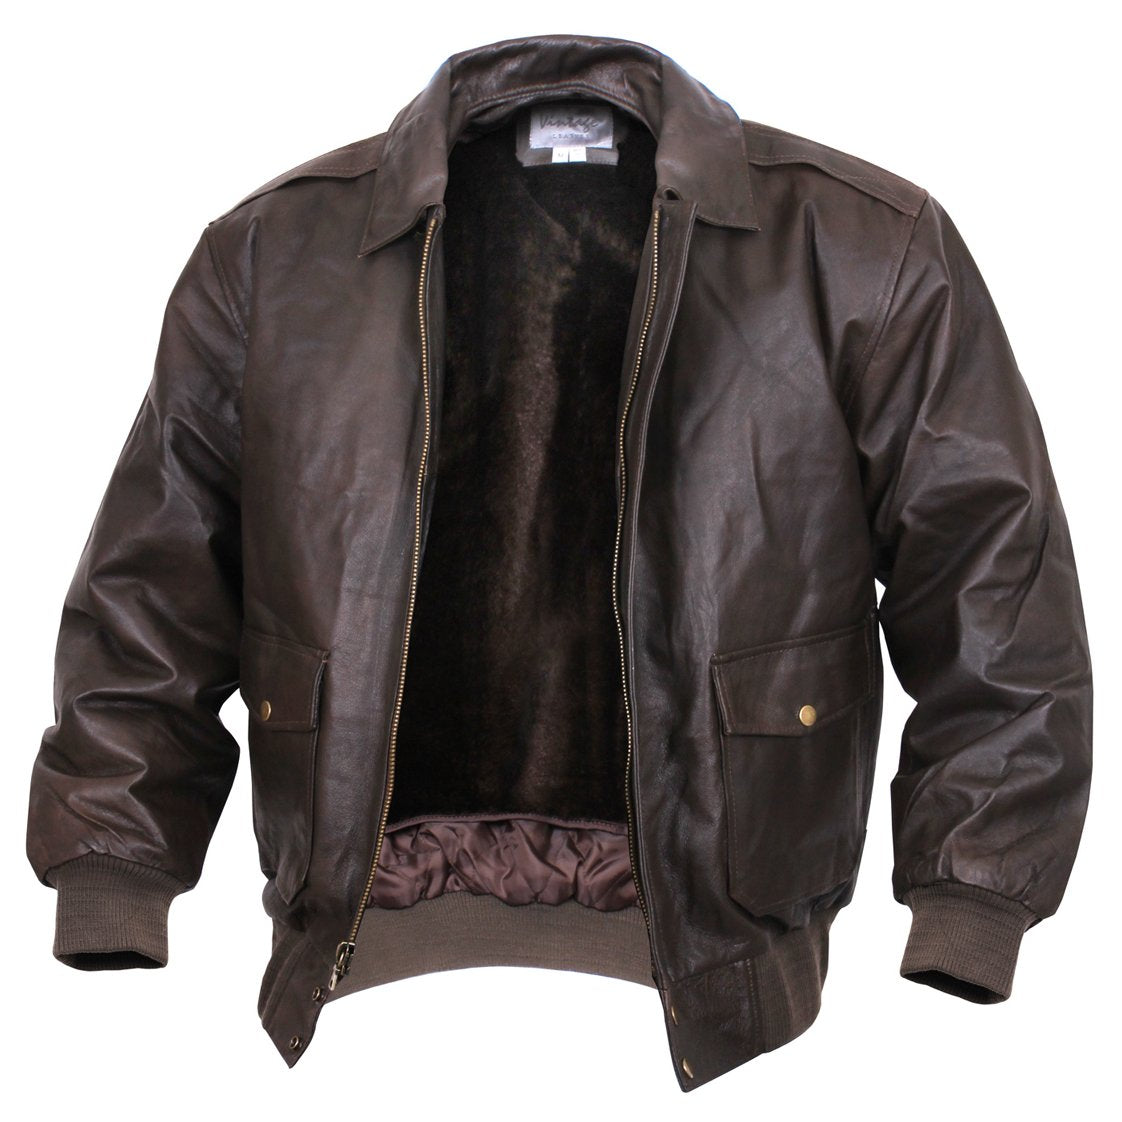 Mens A-2 Dark Brown Leather Flight Jacket